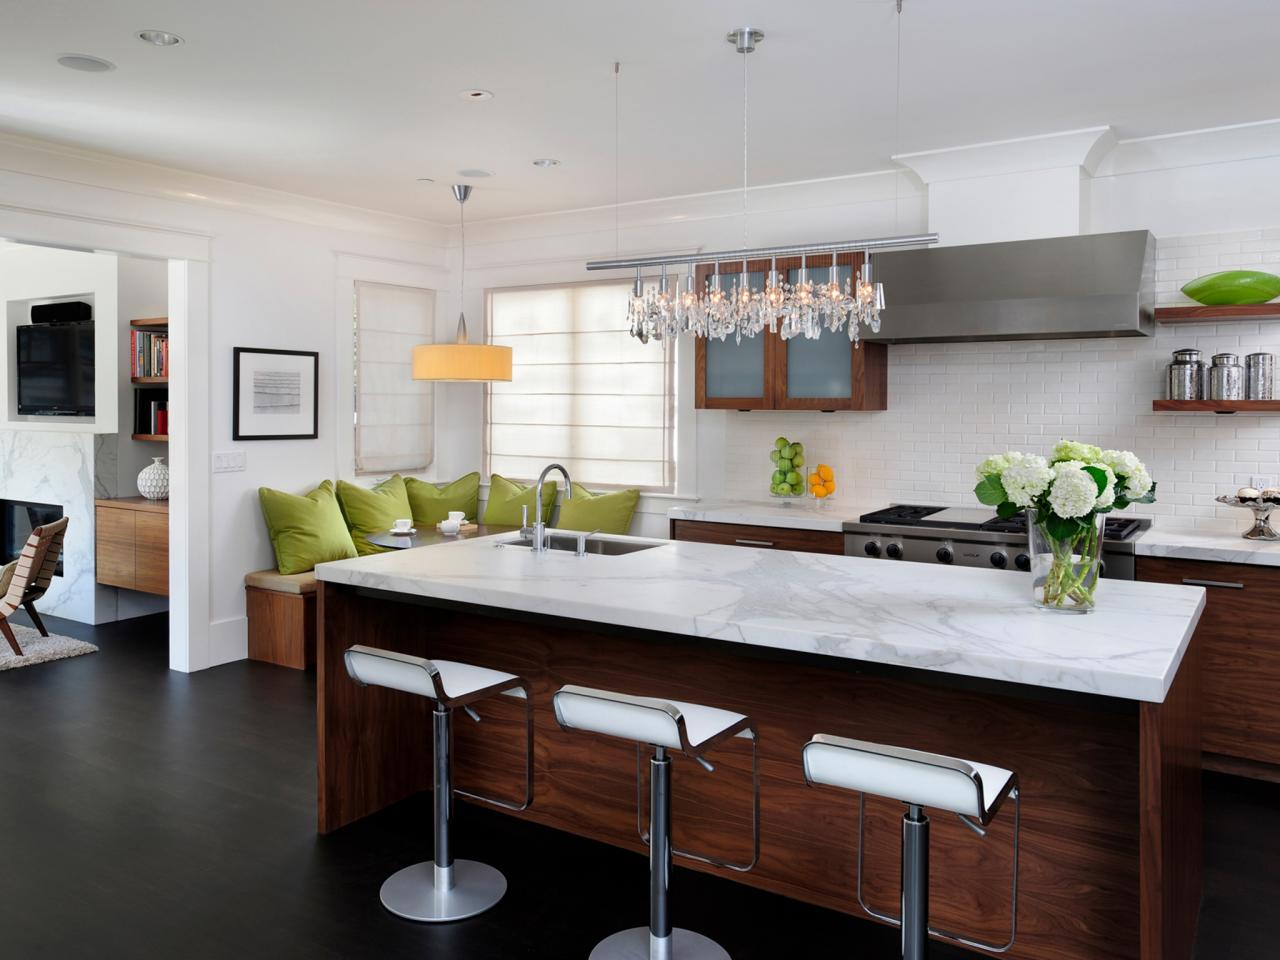 Modern Kitchen Islands Pictures, Ideas \u0026 Tips From HGTV